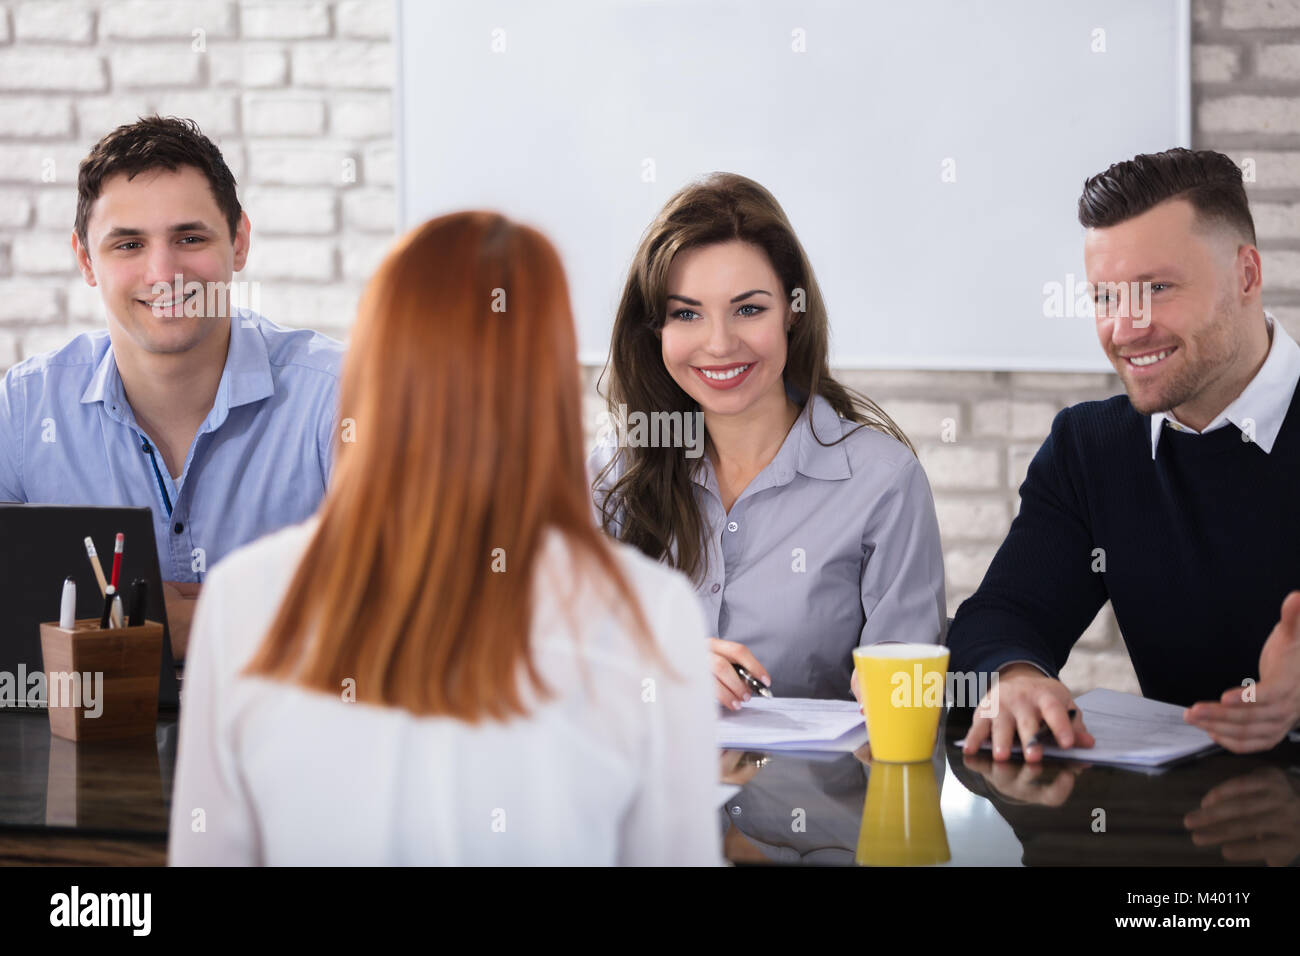 Rear View Of A Woman At Job Interview - Stock Image